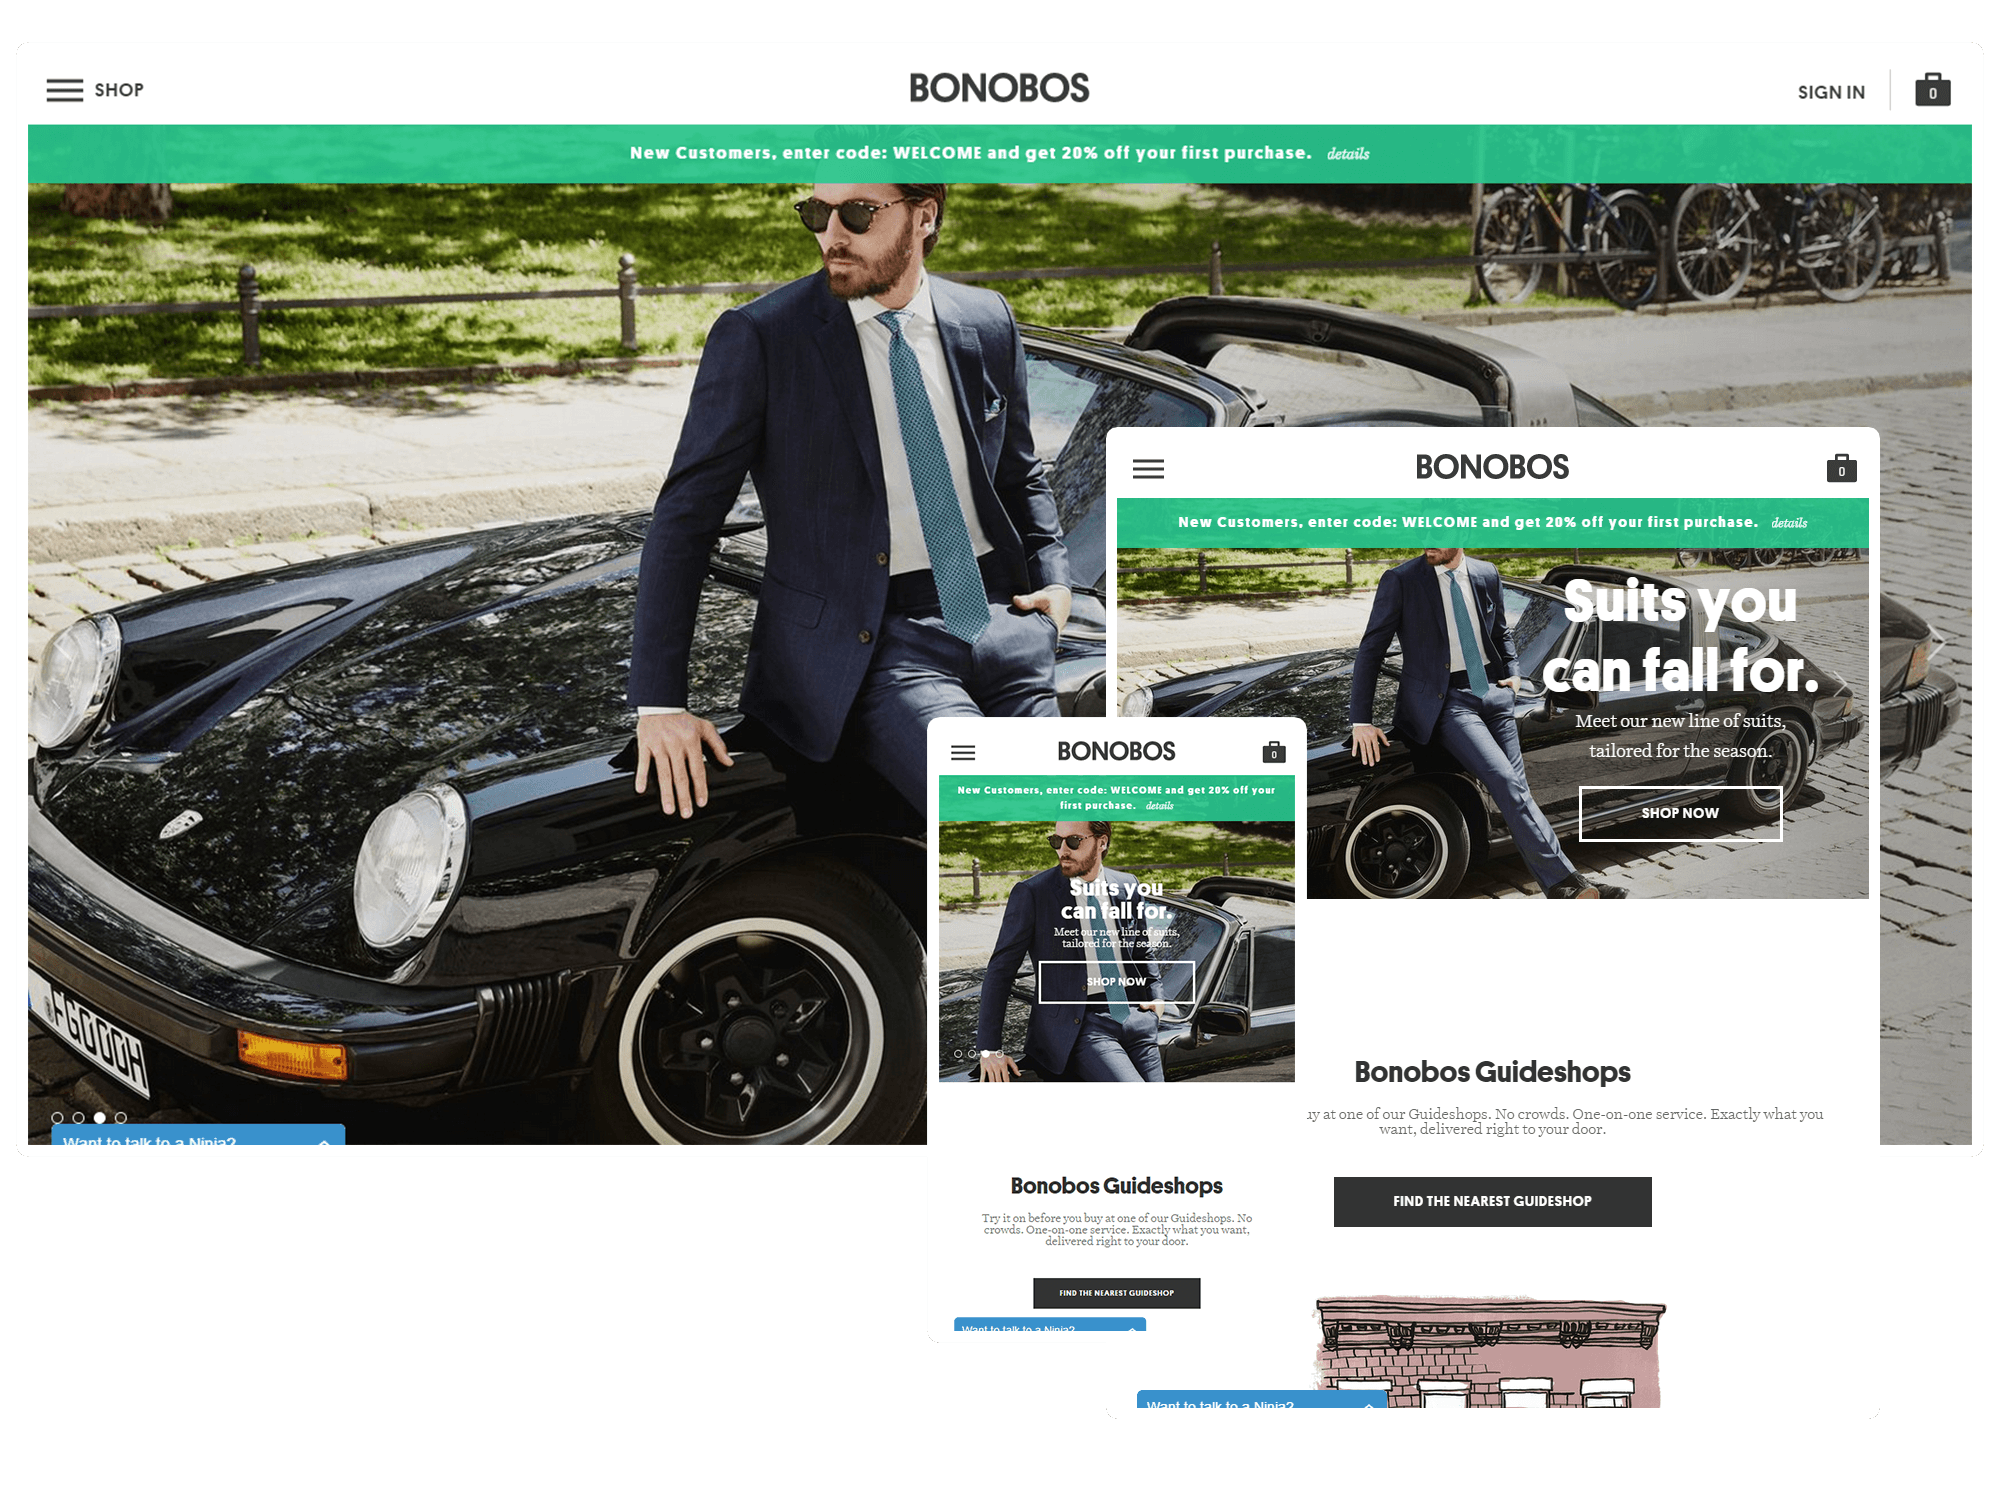 Another example of Responsive Website Design from Bonobos high fashion clothiers